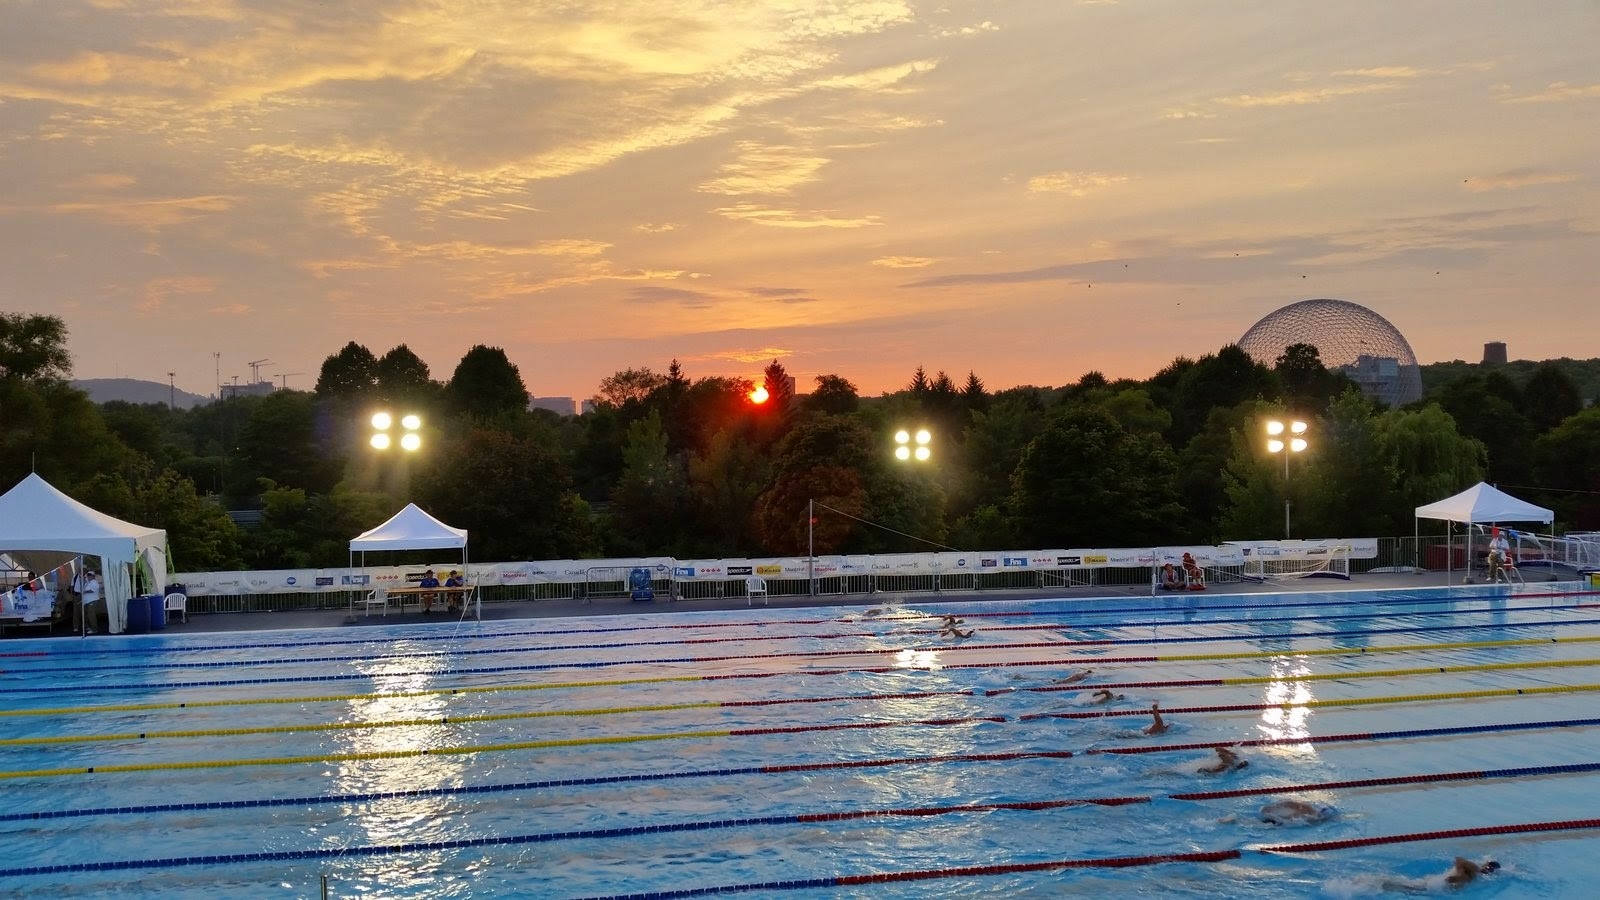 The Temporary Pool at sunset during the first day of competition.  800m freestyle heats continued well into the evening.  Note the geodesic dome (now a biosphere) on the right which was constructed during the 1967 world Expo in Montreal